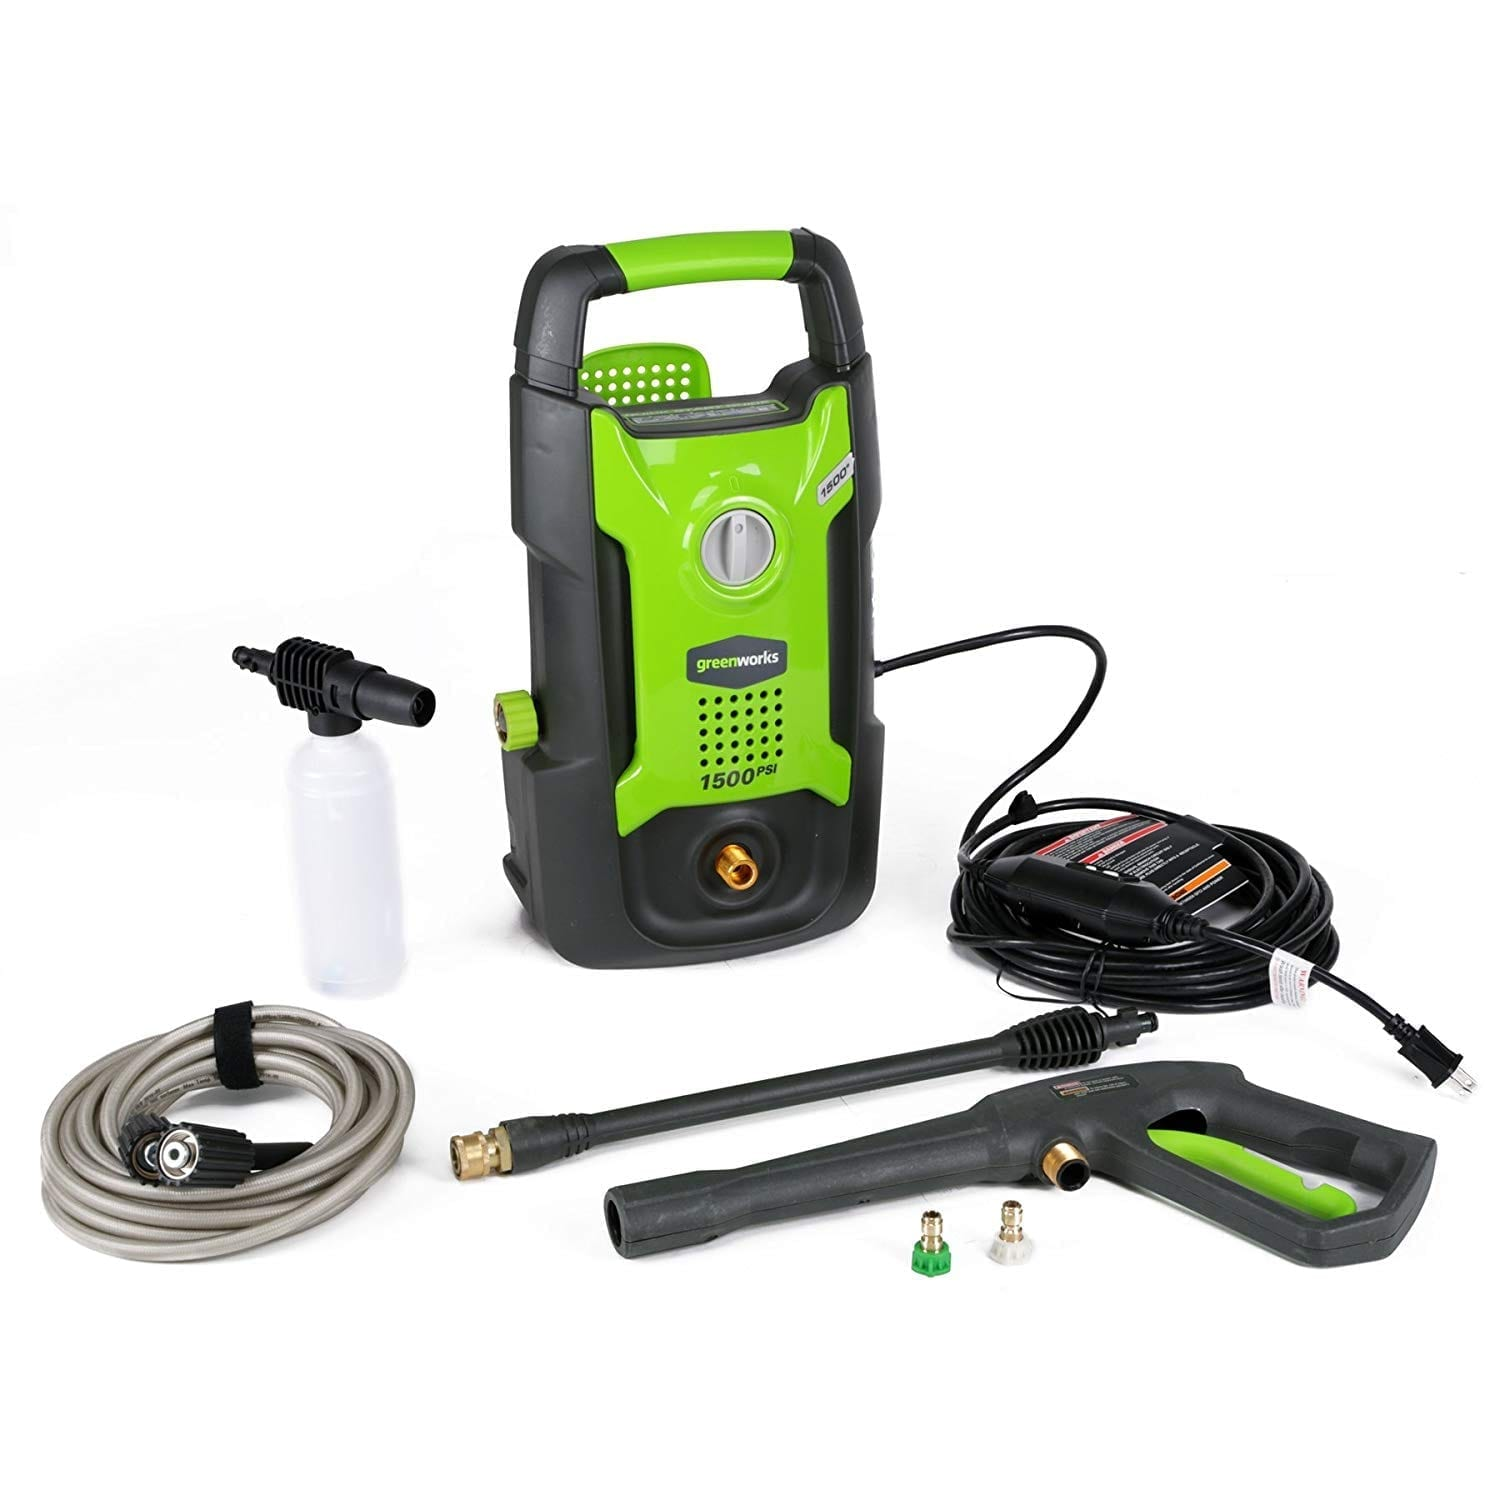 Greenworks 1500 PSI 13 AMP 1.2 GPM Pressure Washer GPW 1501